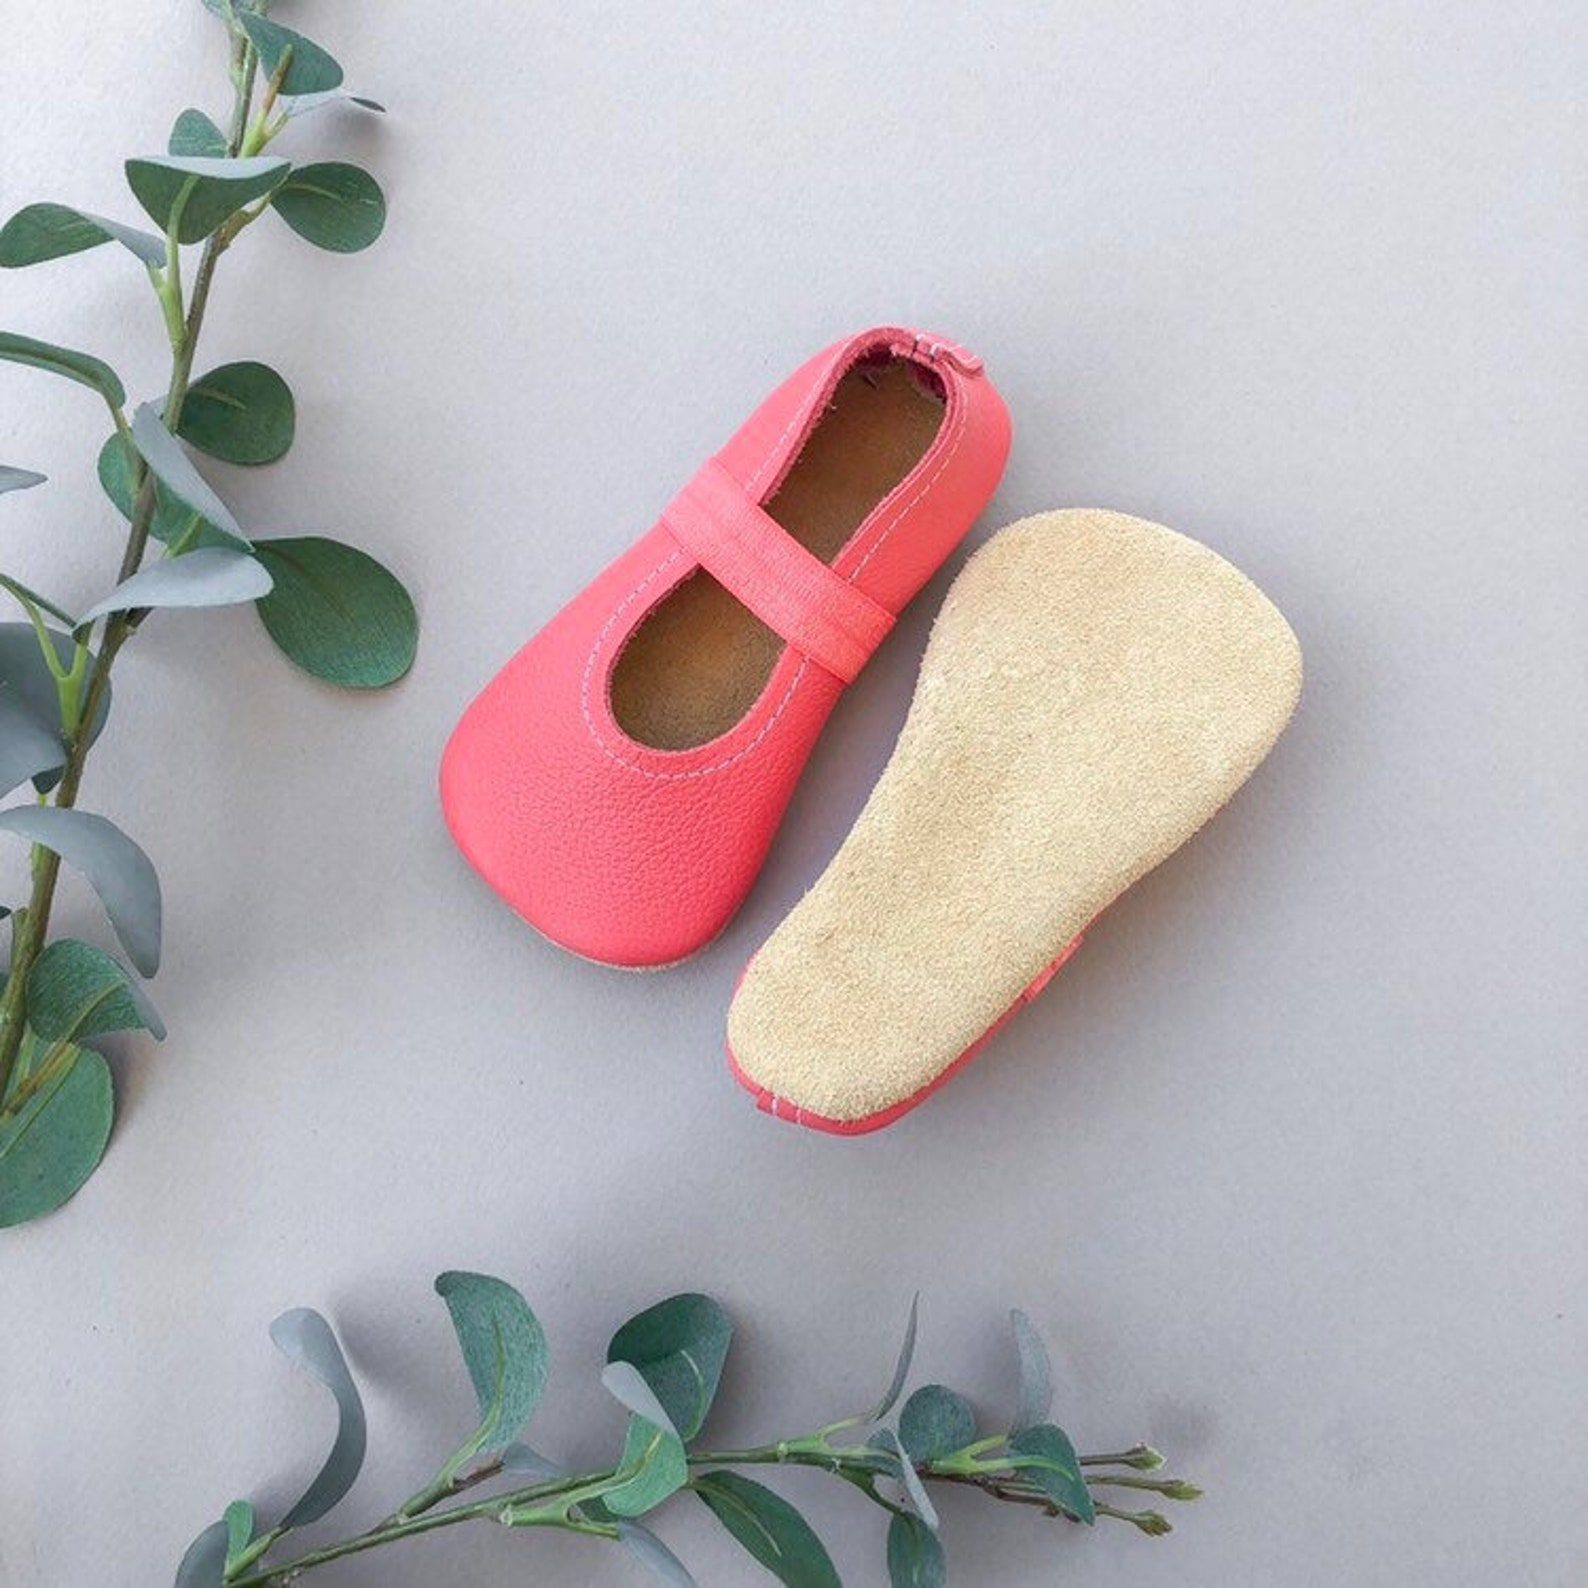 coral ballet flats - pink baby moccasins - genuine leather toddler shoes - spring baby outfit